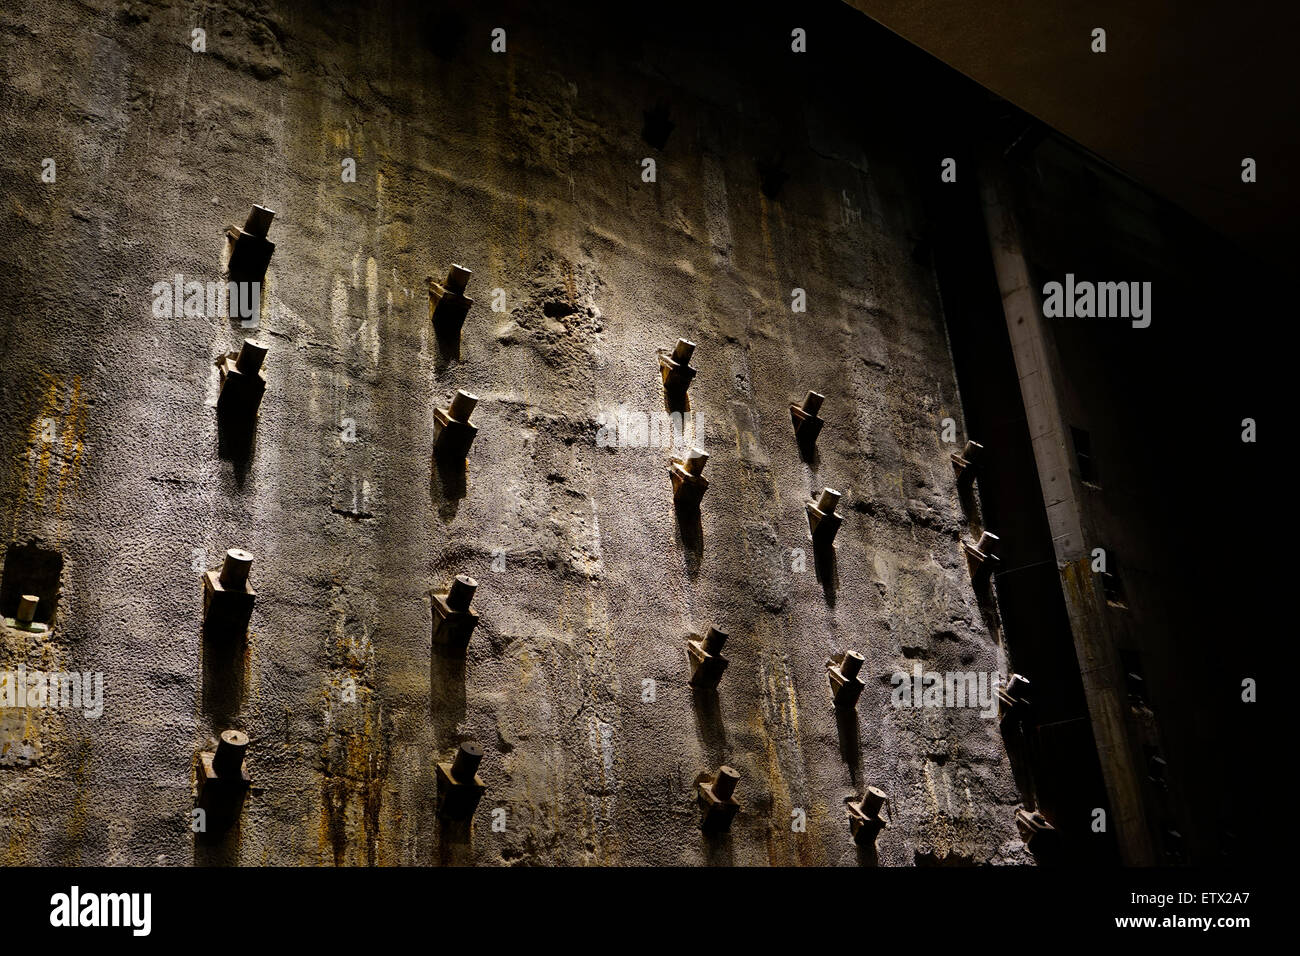 original slurry wall in foundation hall in the 9/11 memorial museum - Stock Image